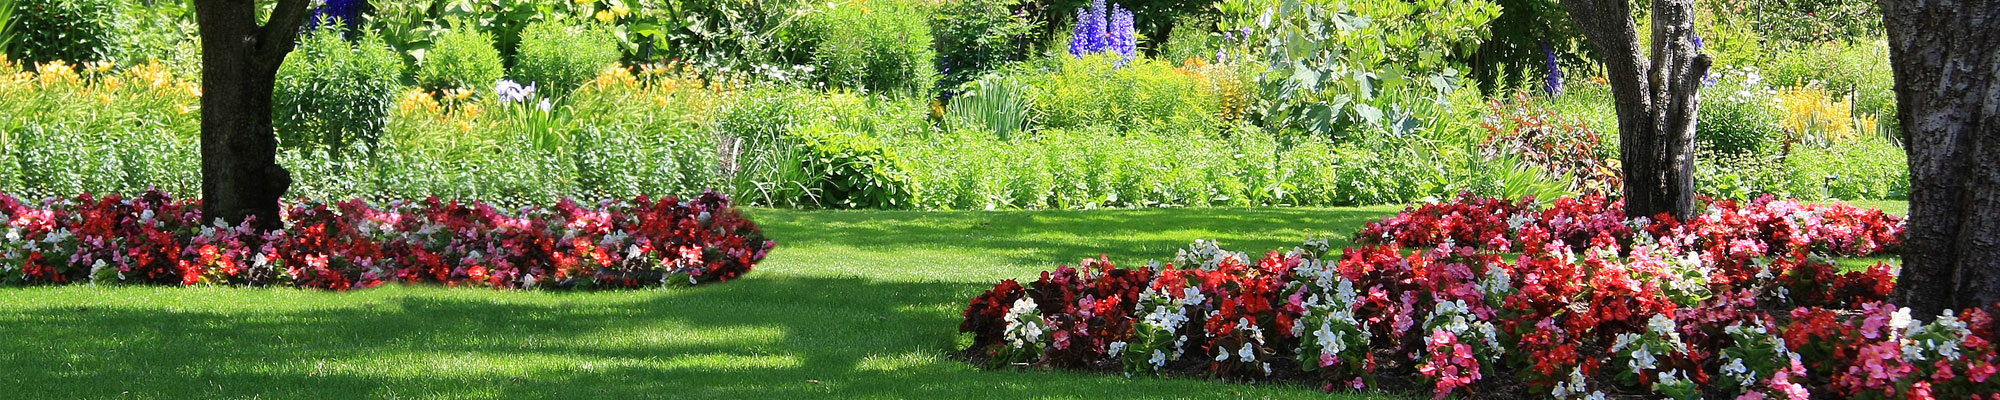 Landscaping services newport pagnell milton keynes workwithnaturefo